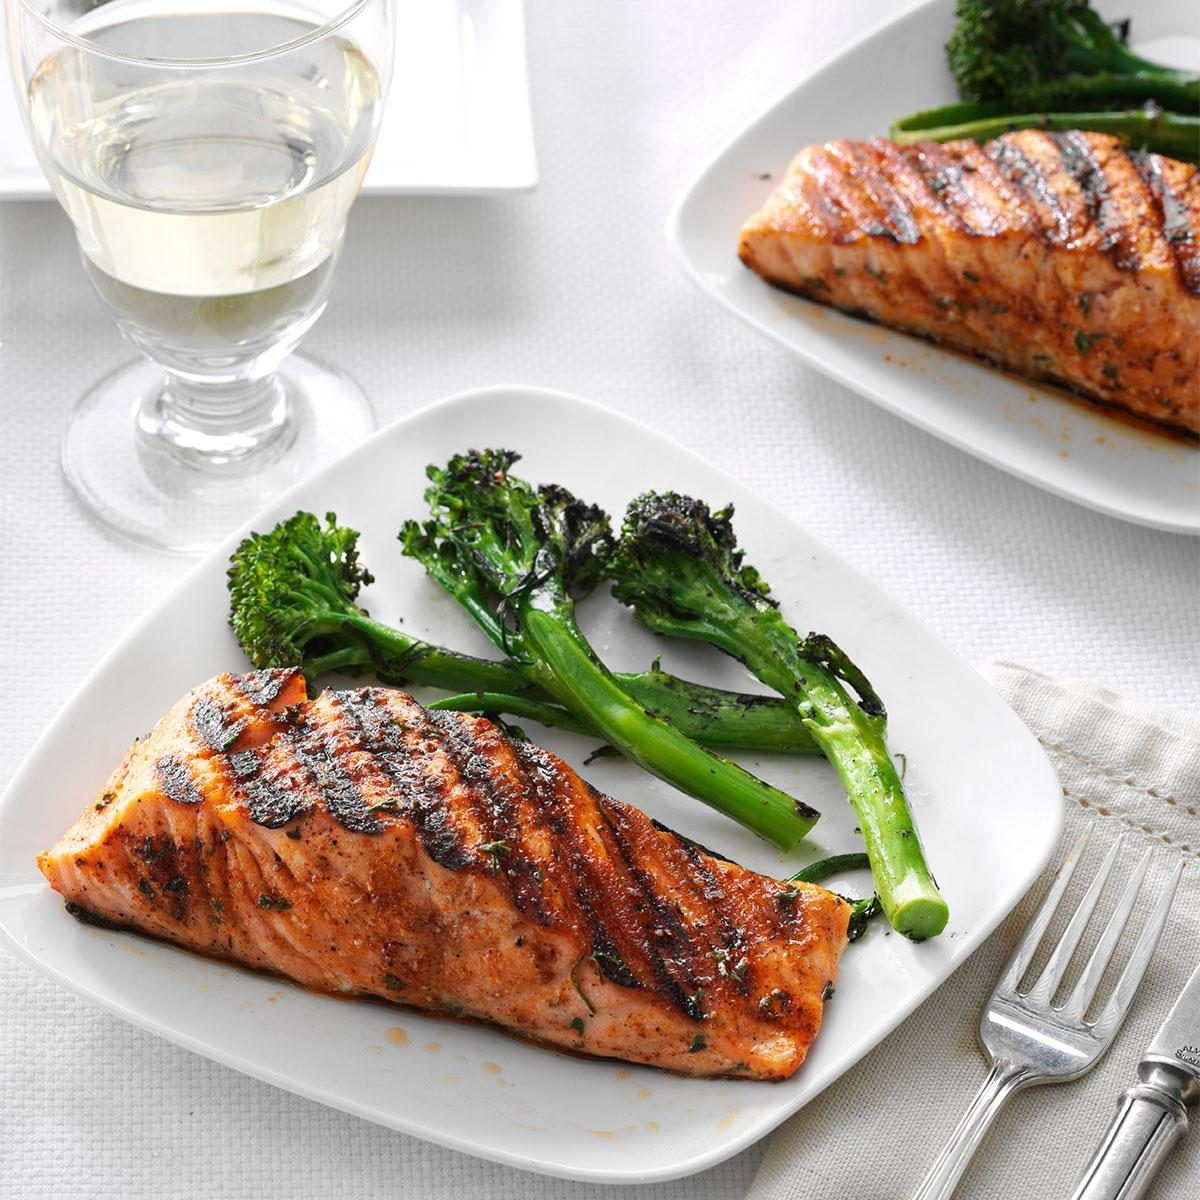 Spice rubbed salmon recipe taste of home for Tasty fish recipes